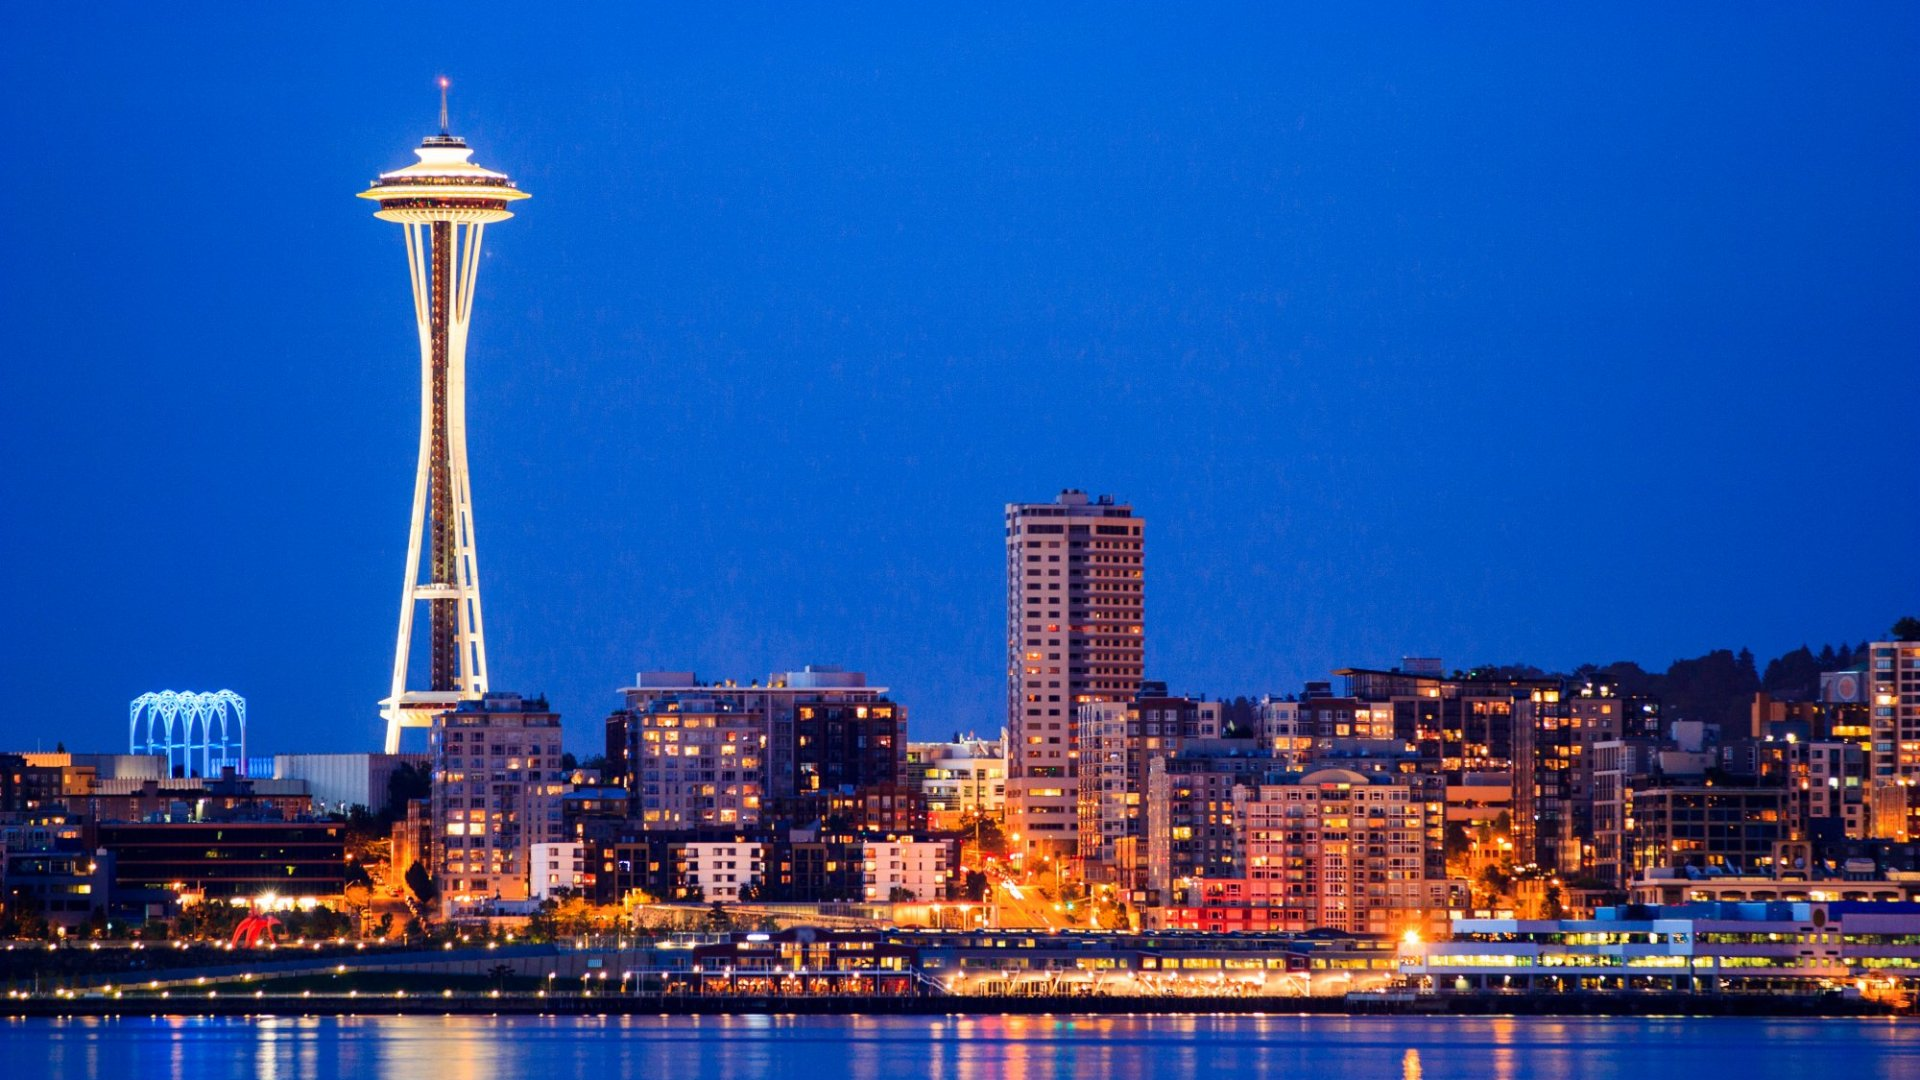 Why Expedia's $228.9 Million Move to Seattle Might Be a Bad Idea